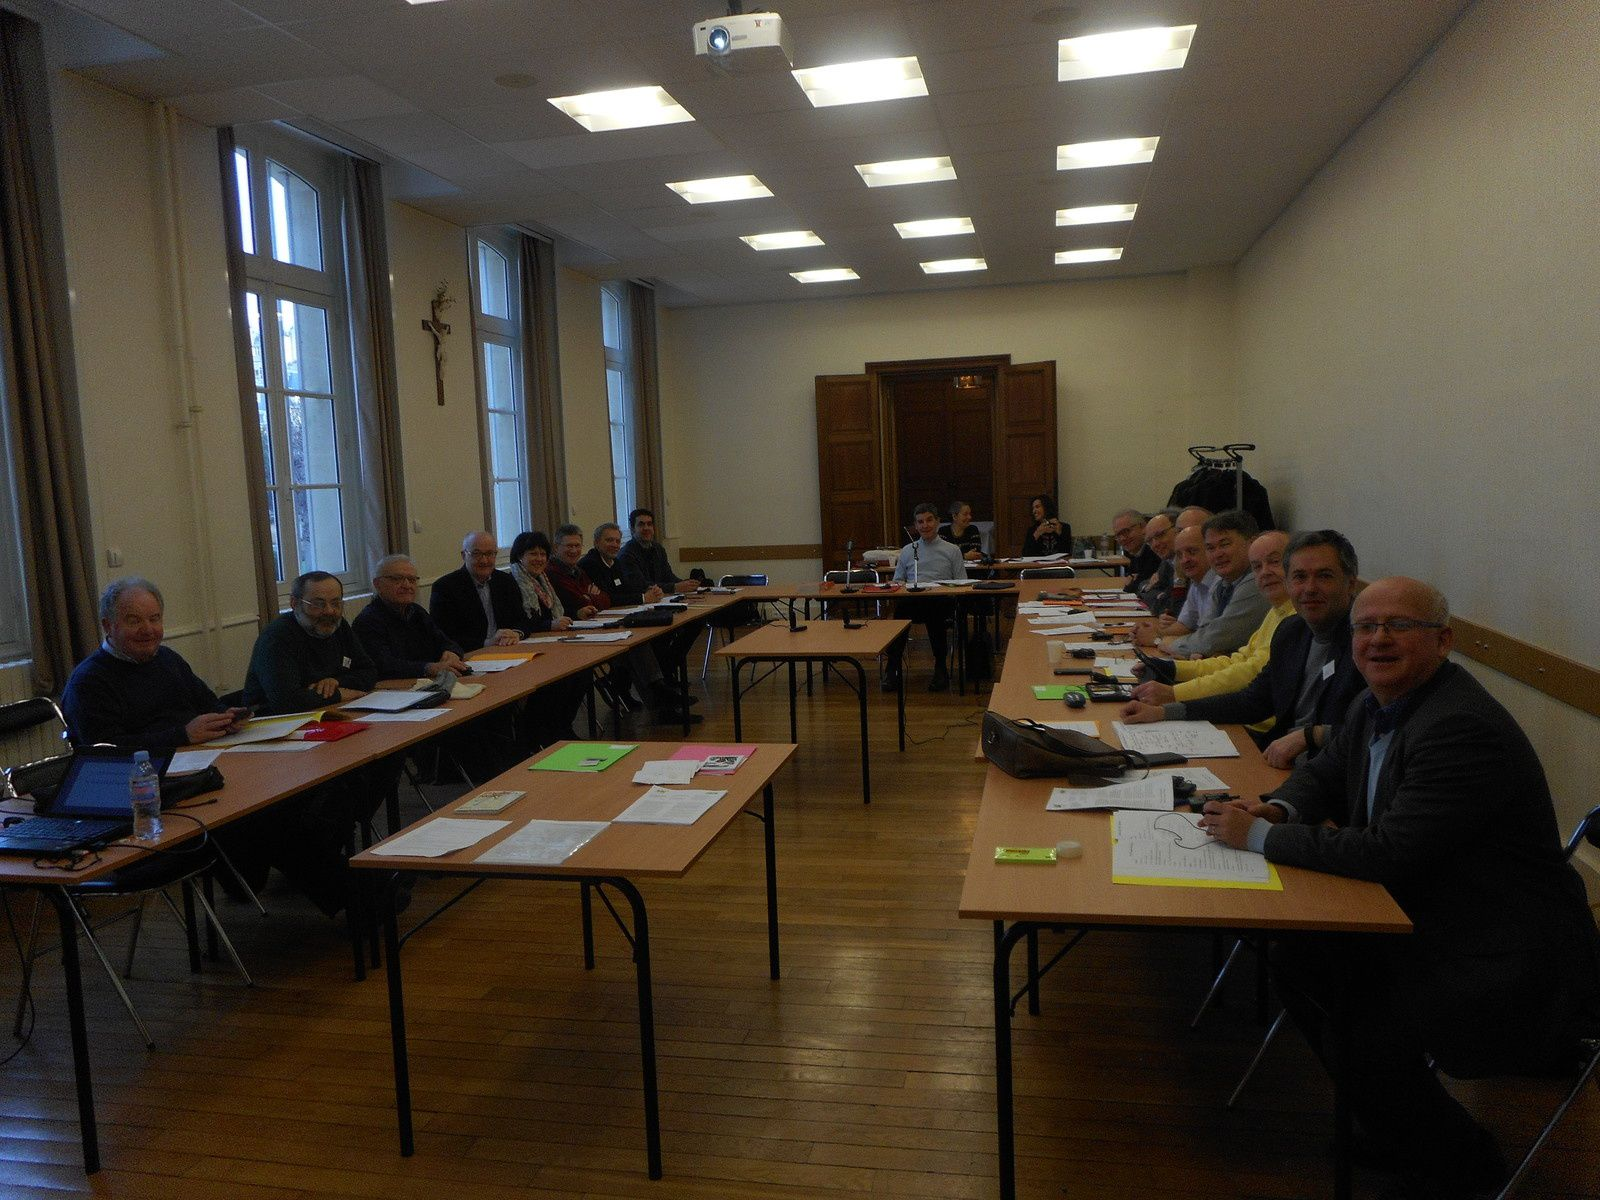 Réunion des chefs d'établissement coordinateurs des institutions éducatives de la Province d'Europe /.../ Meeting of the Heads of the educational centres in the Province of Europe